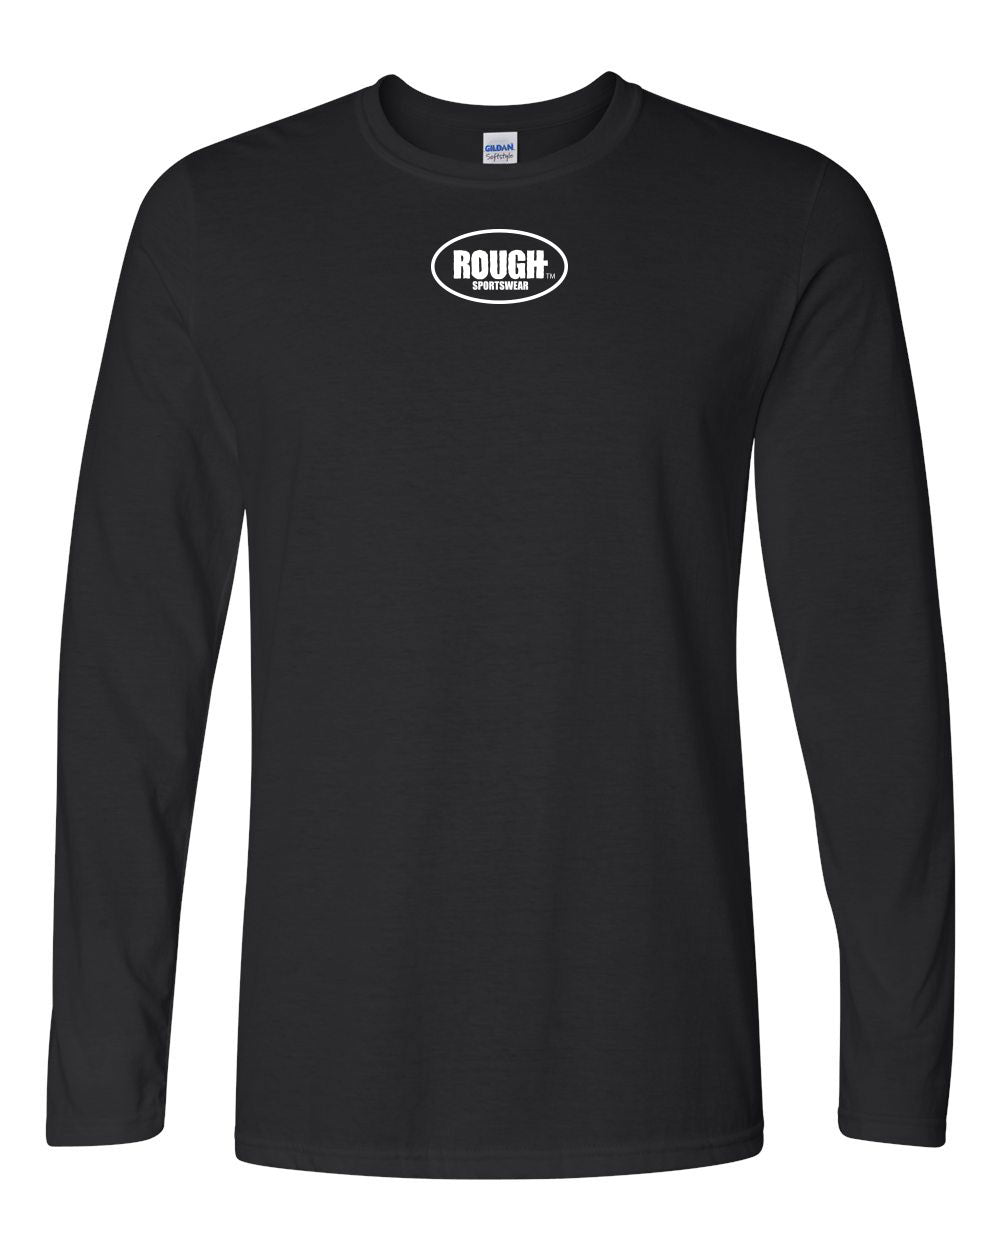 Men's Long Sleeve Cotton T-Shirt with Small Logo